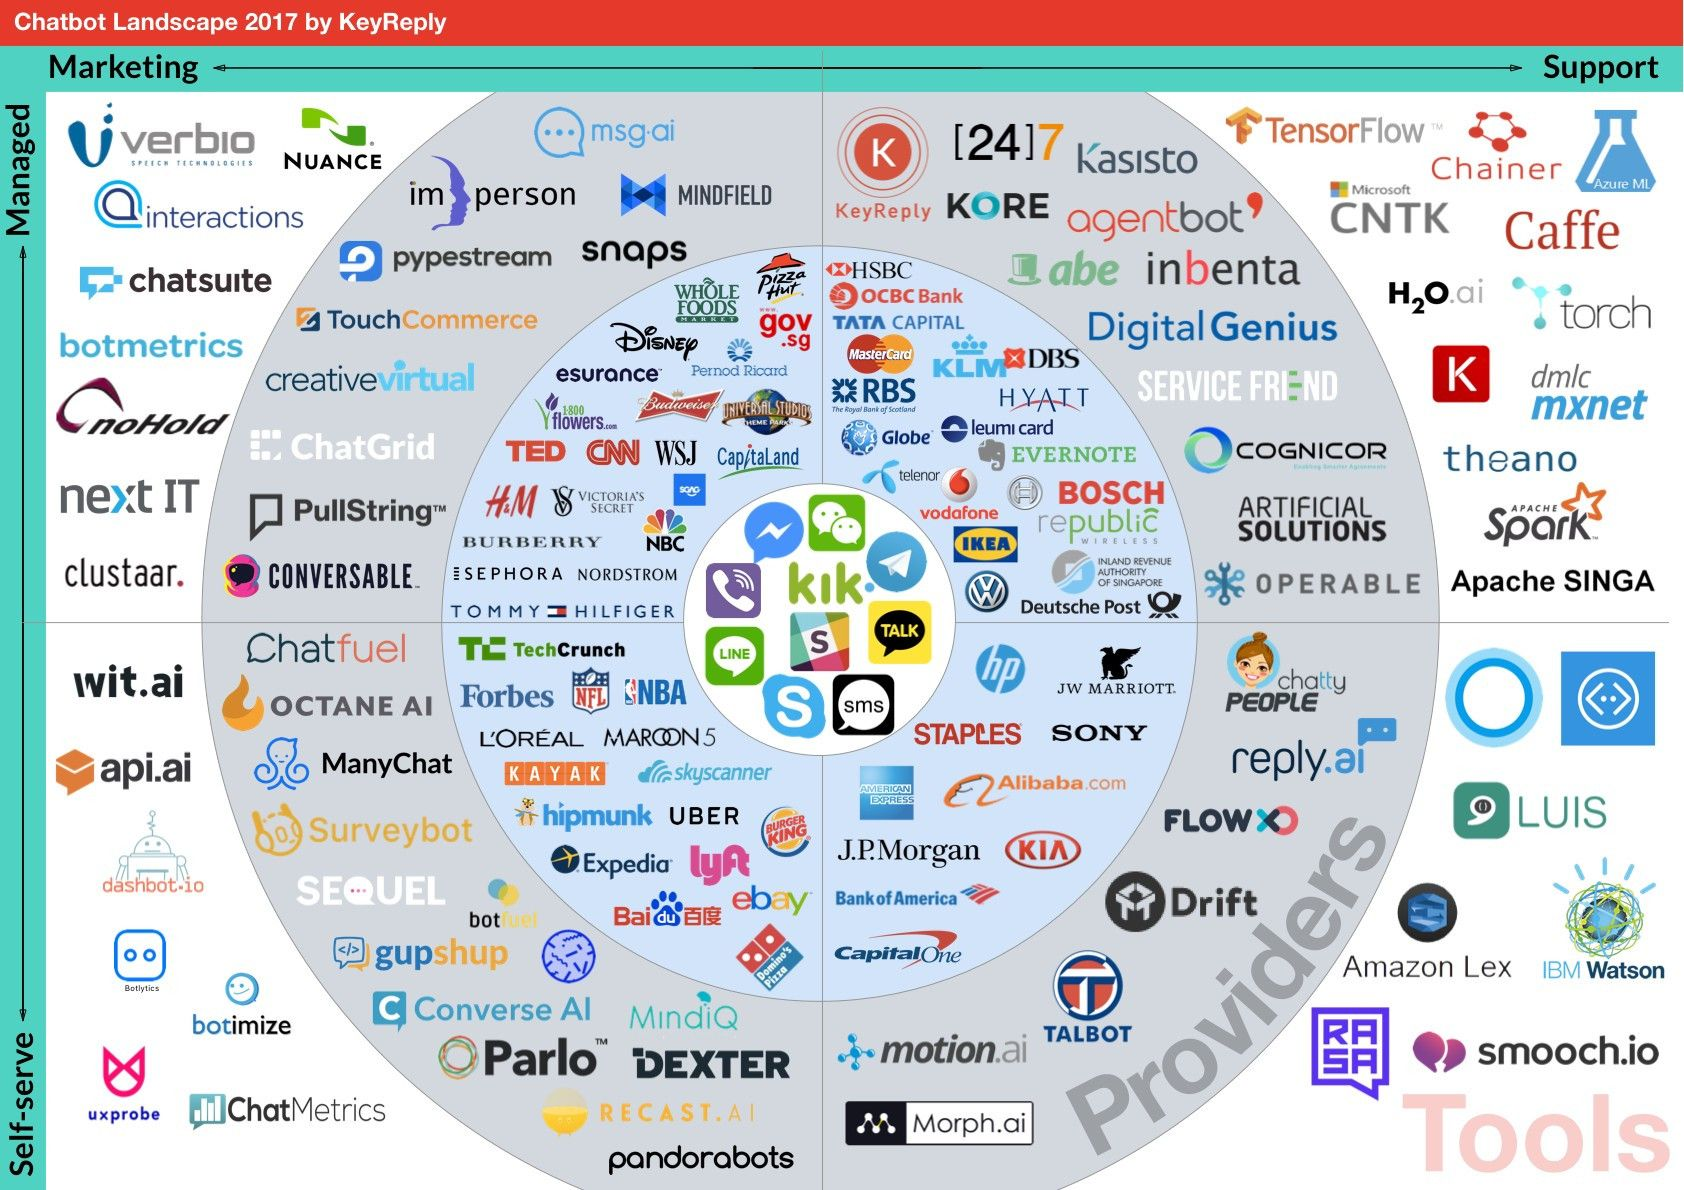 155 Chatbots In This Brand New Landscape Where Does Your Bot Fit